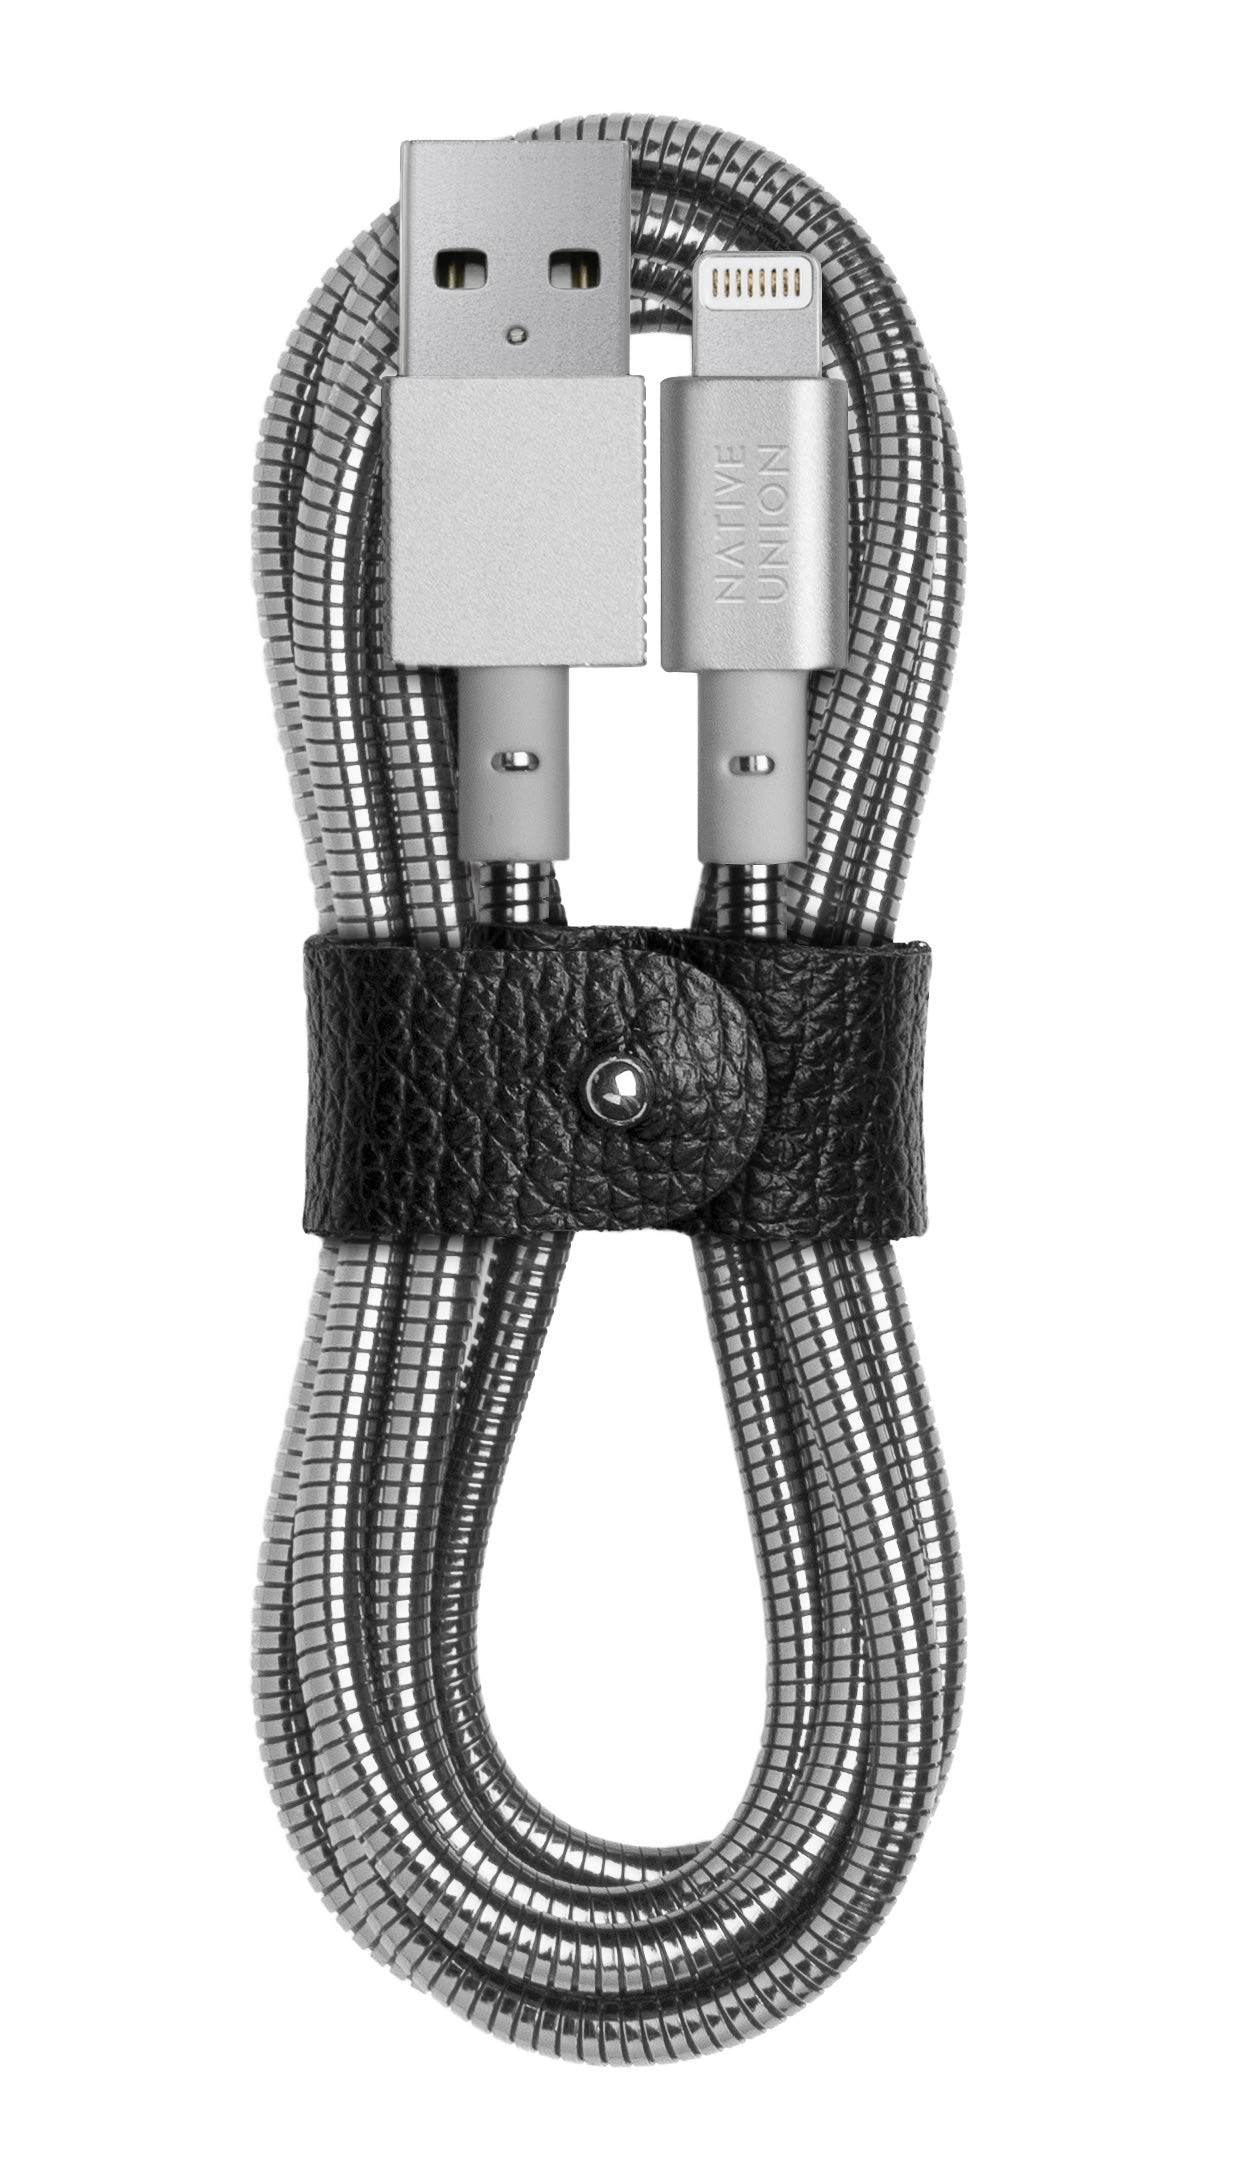 Native Union Coil Cable - 4ft Ultra-Strong Stainless Steel Reinforced [Apple MFi Certified] Lightning to USB Charging Cable with Leather Strap for iPhone/iPad (Silver)